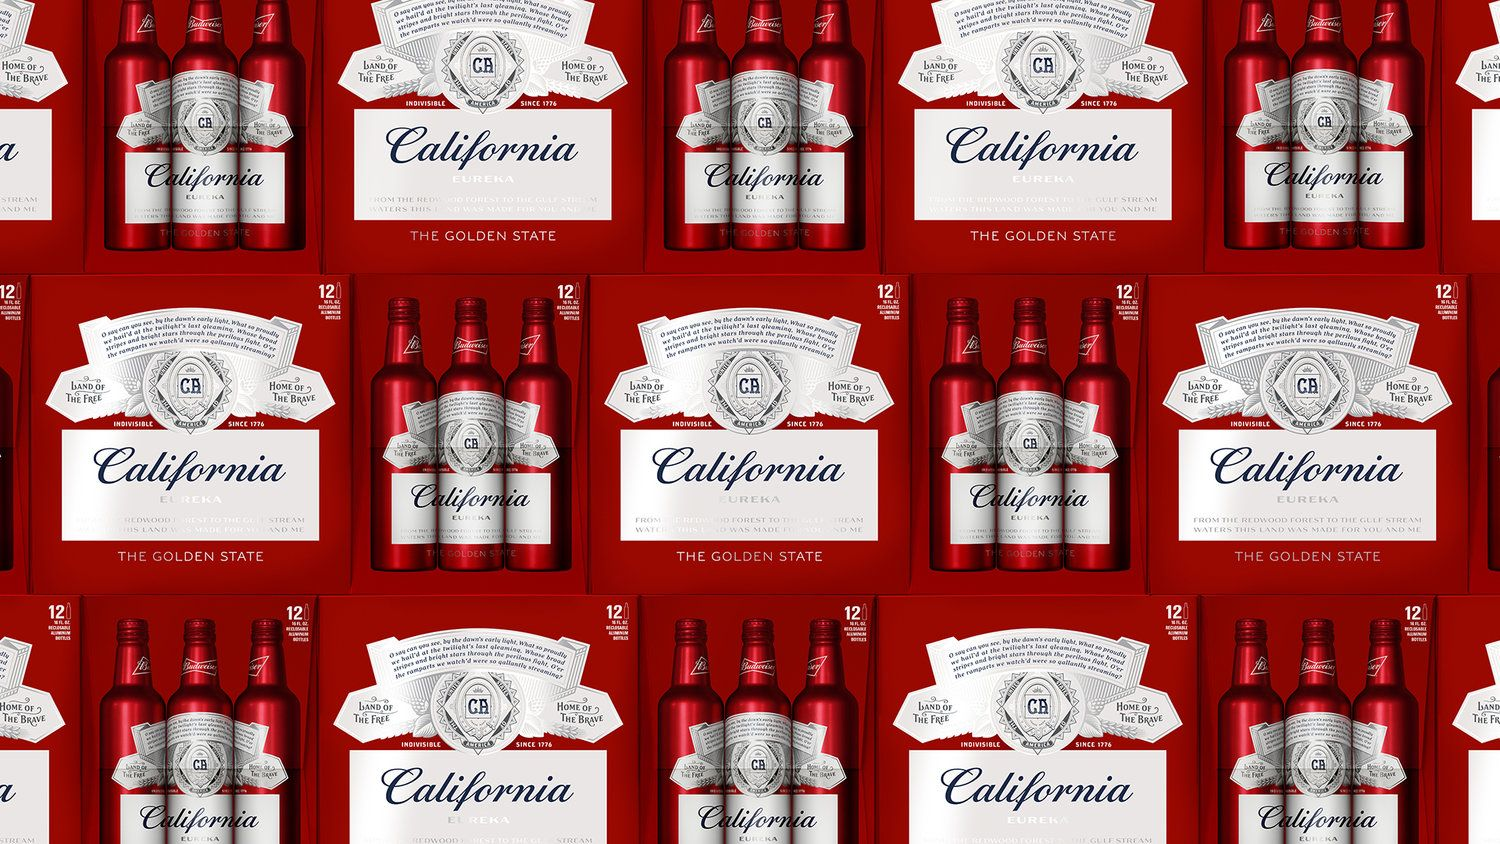 11 Budweiser Summer State Cans From Ny To Ca Budweiser Beer Design Packaging Design Inspiration